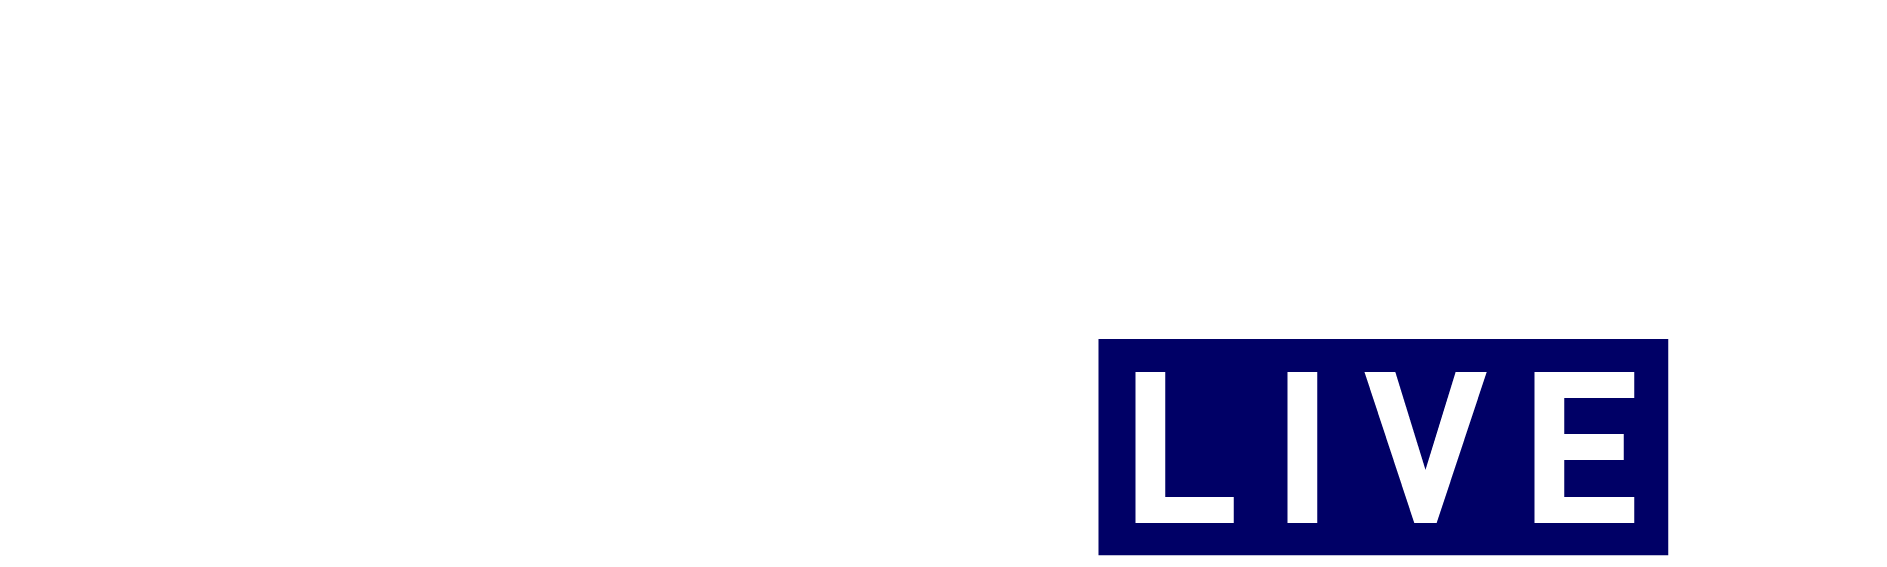 Walker Valley LIVE